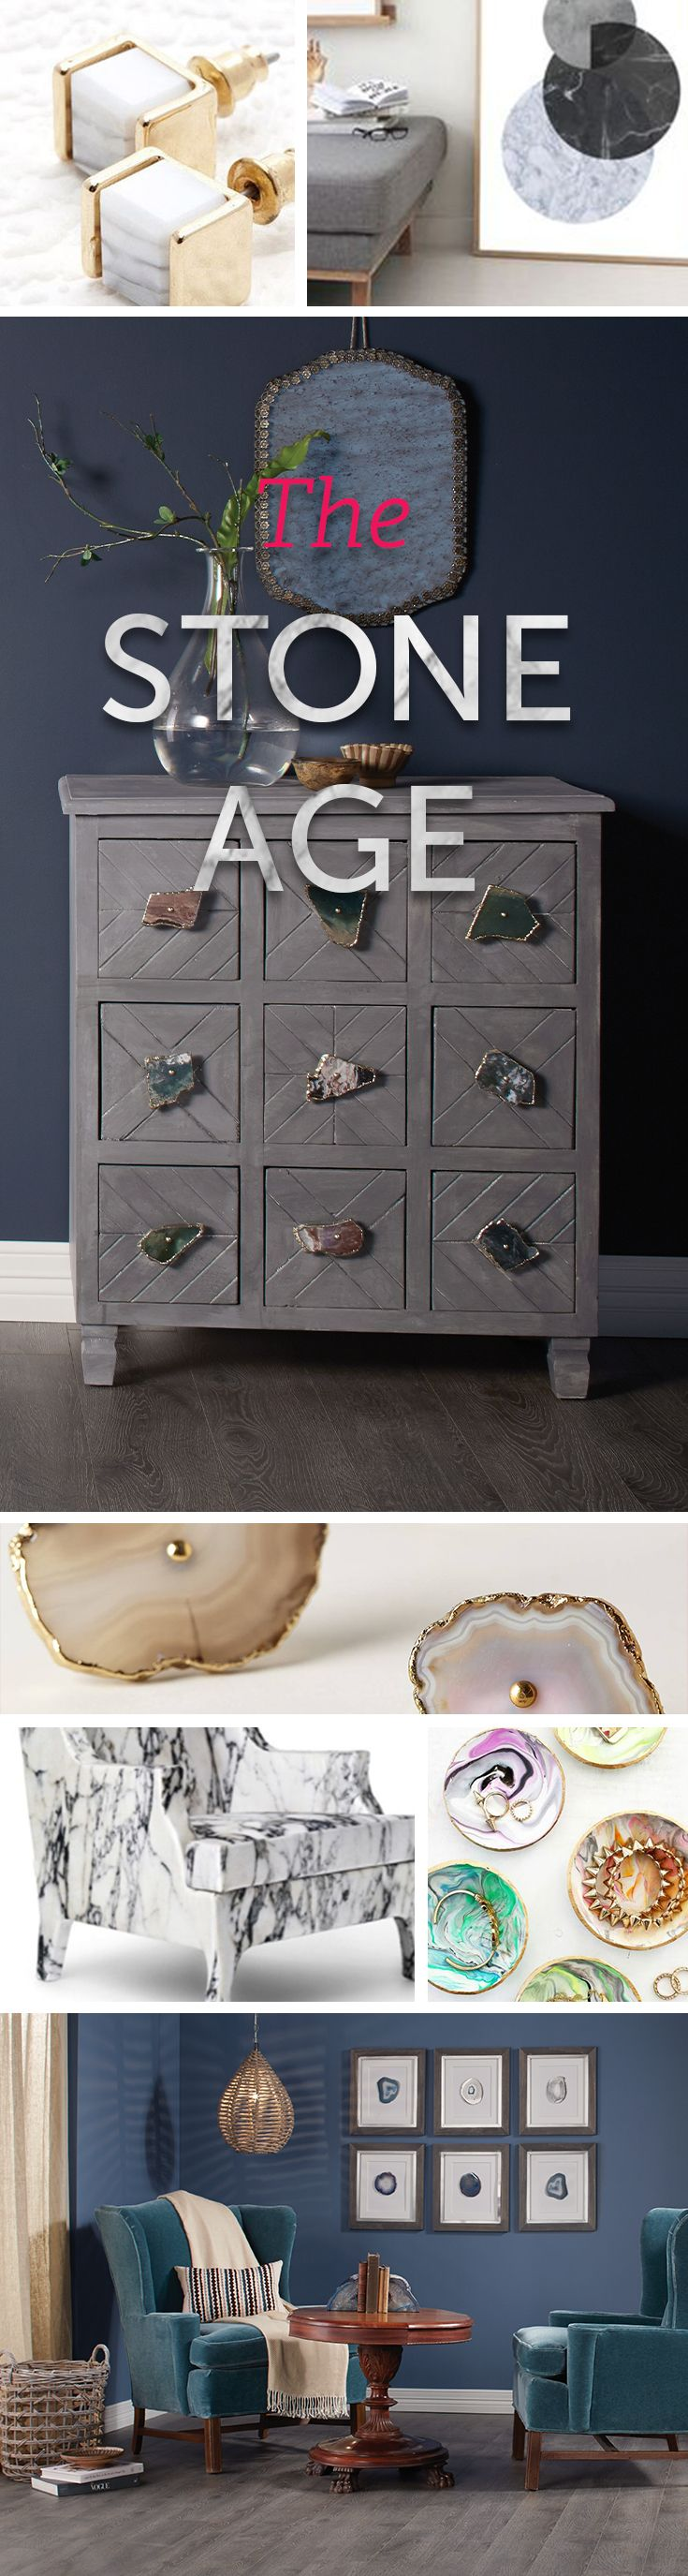 Loving these quartz and stone-inspired looks! Get inspired with this new trend.